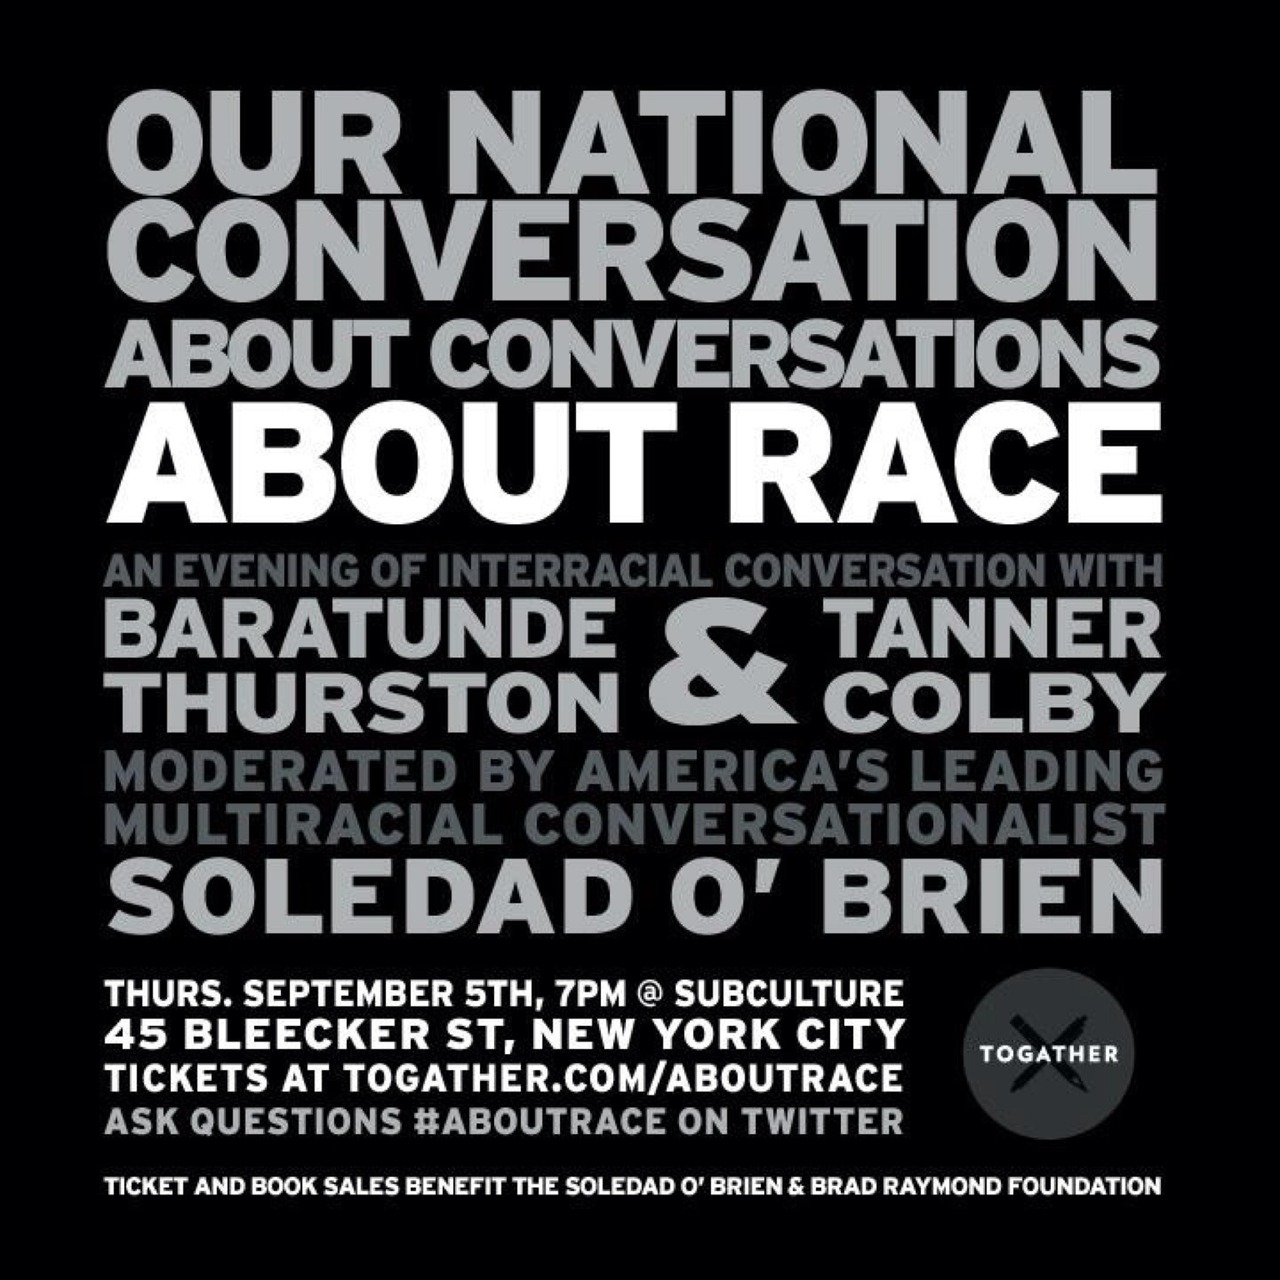 This event will be so damn cool. You have to join if in #NYC. #howtobeblack http://togather.com/aboutrace – View on Path.